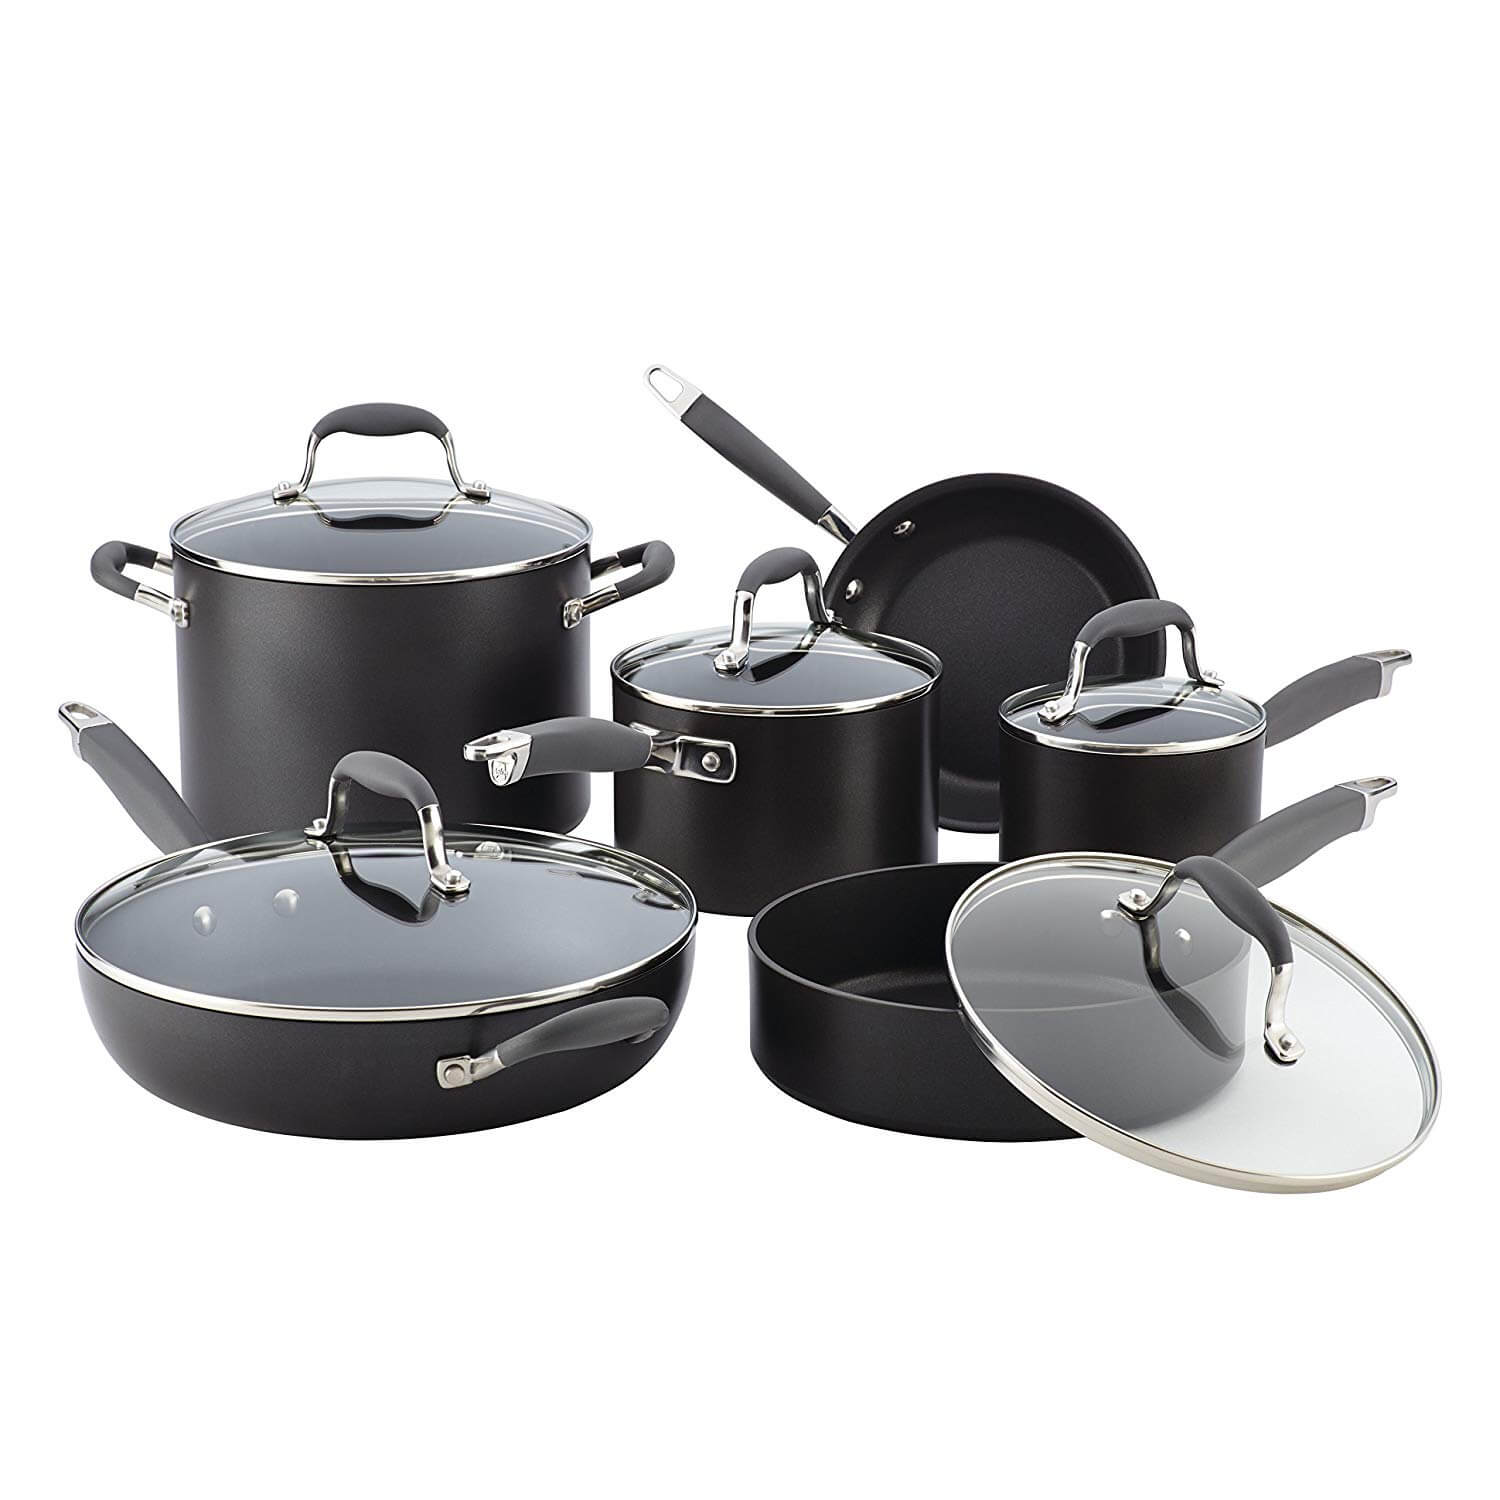 Anolon Advanced Hard Anodized Non-Stick Cookware Set